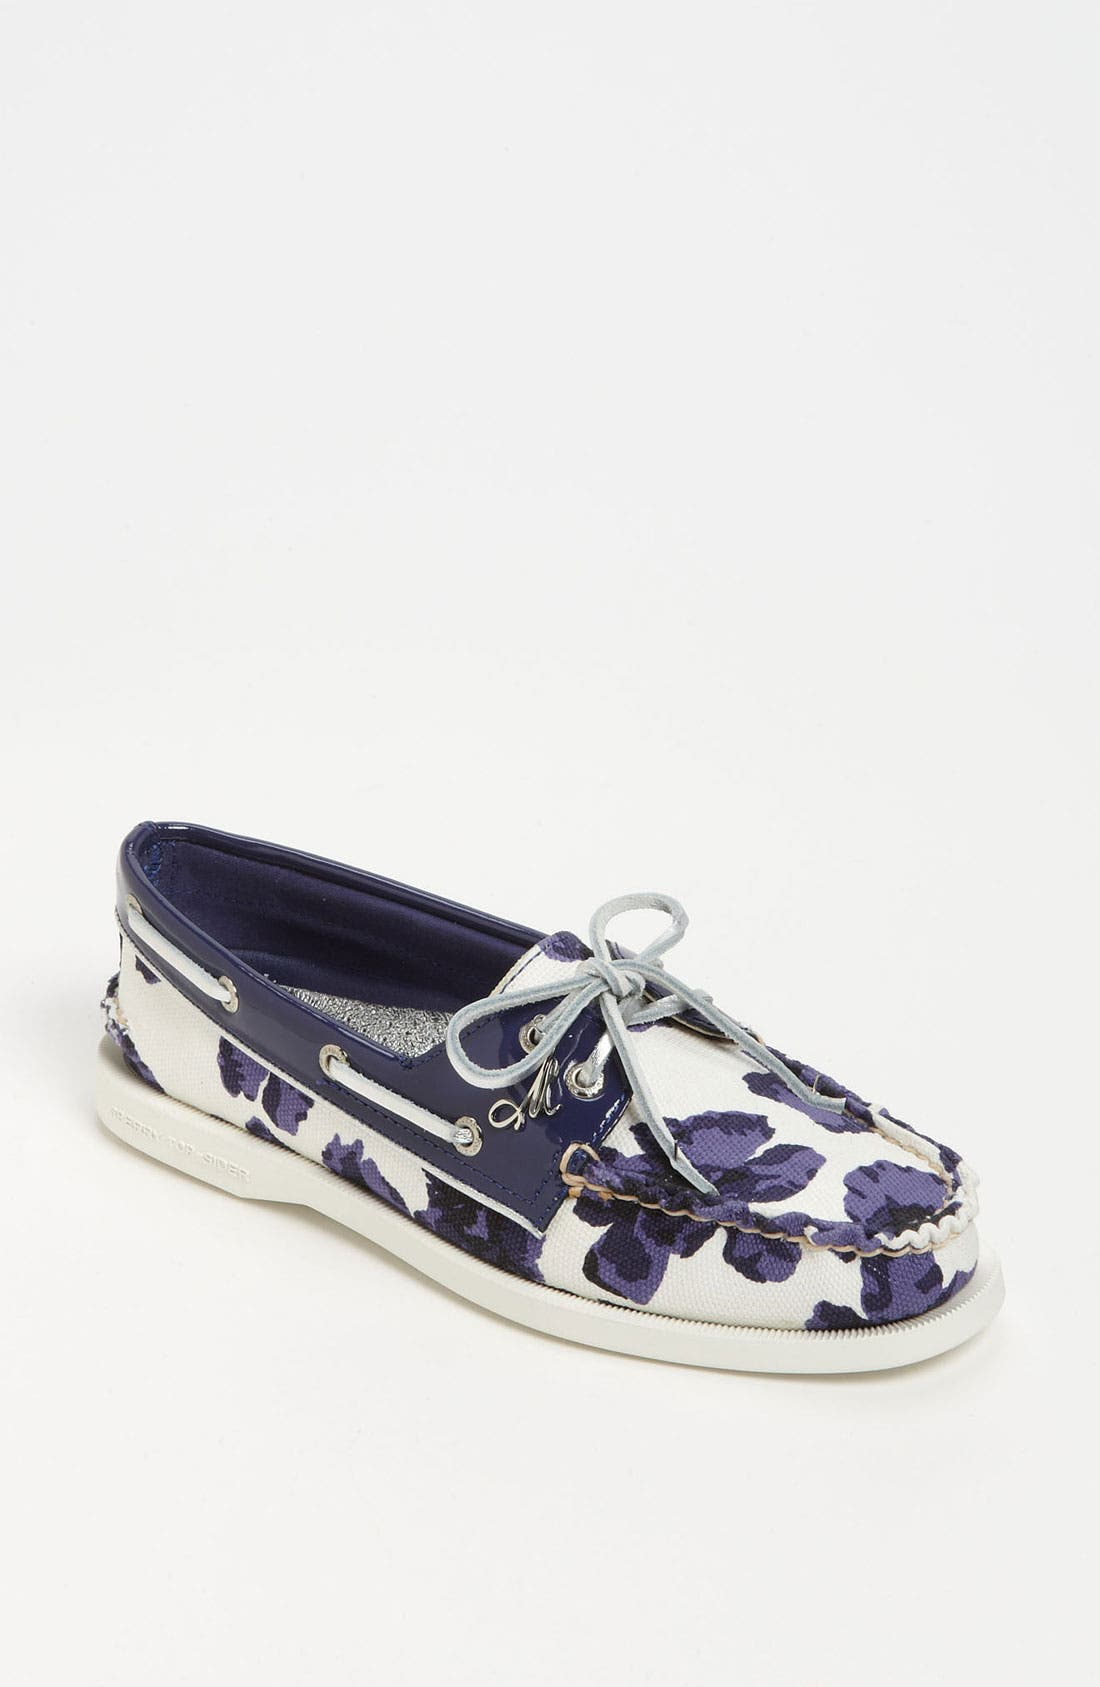 Alternate Image 1 Selected - Milly for Sperry Top-Sider® 'Authentic Original' Boat Shoe (Women)